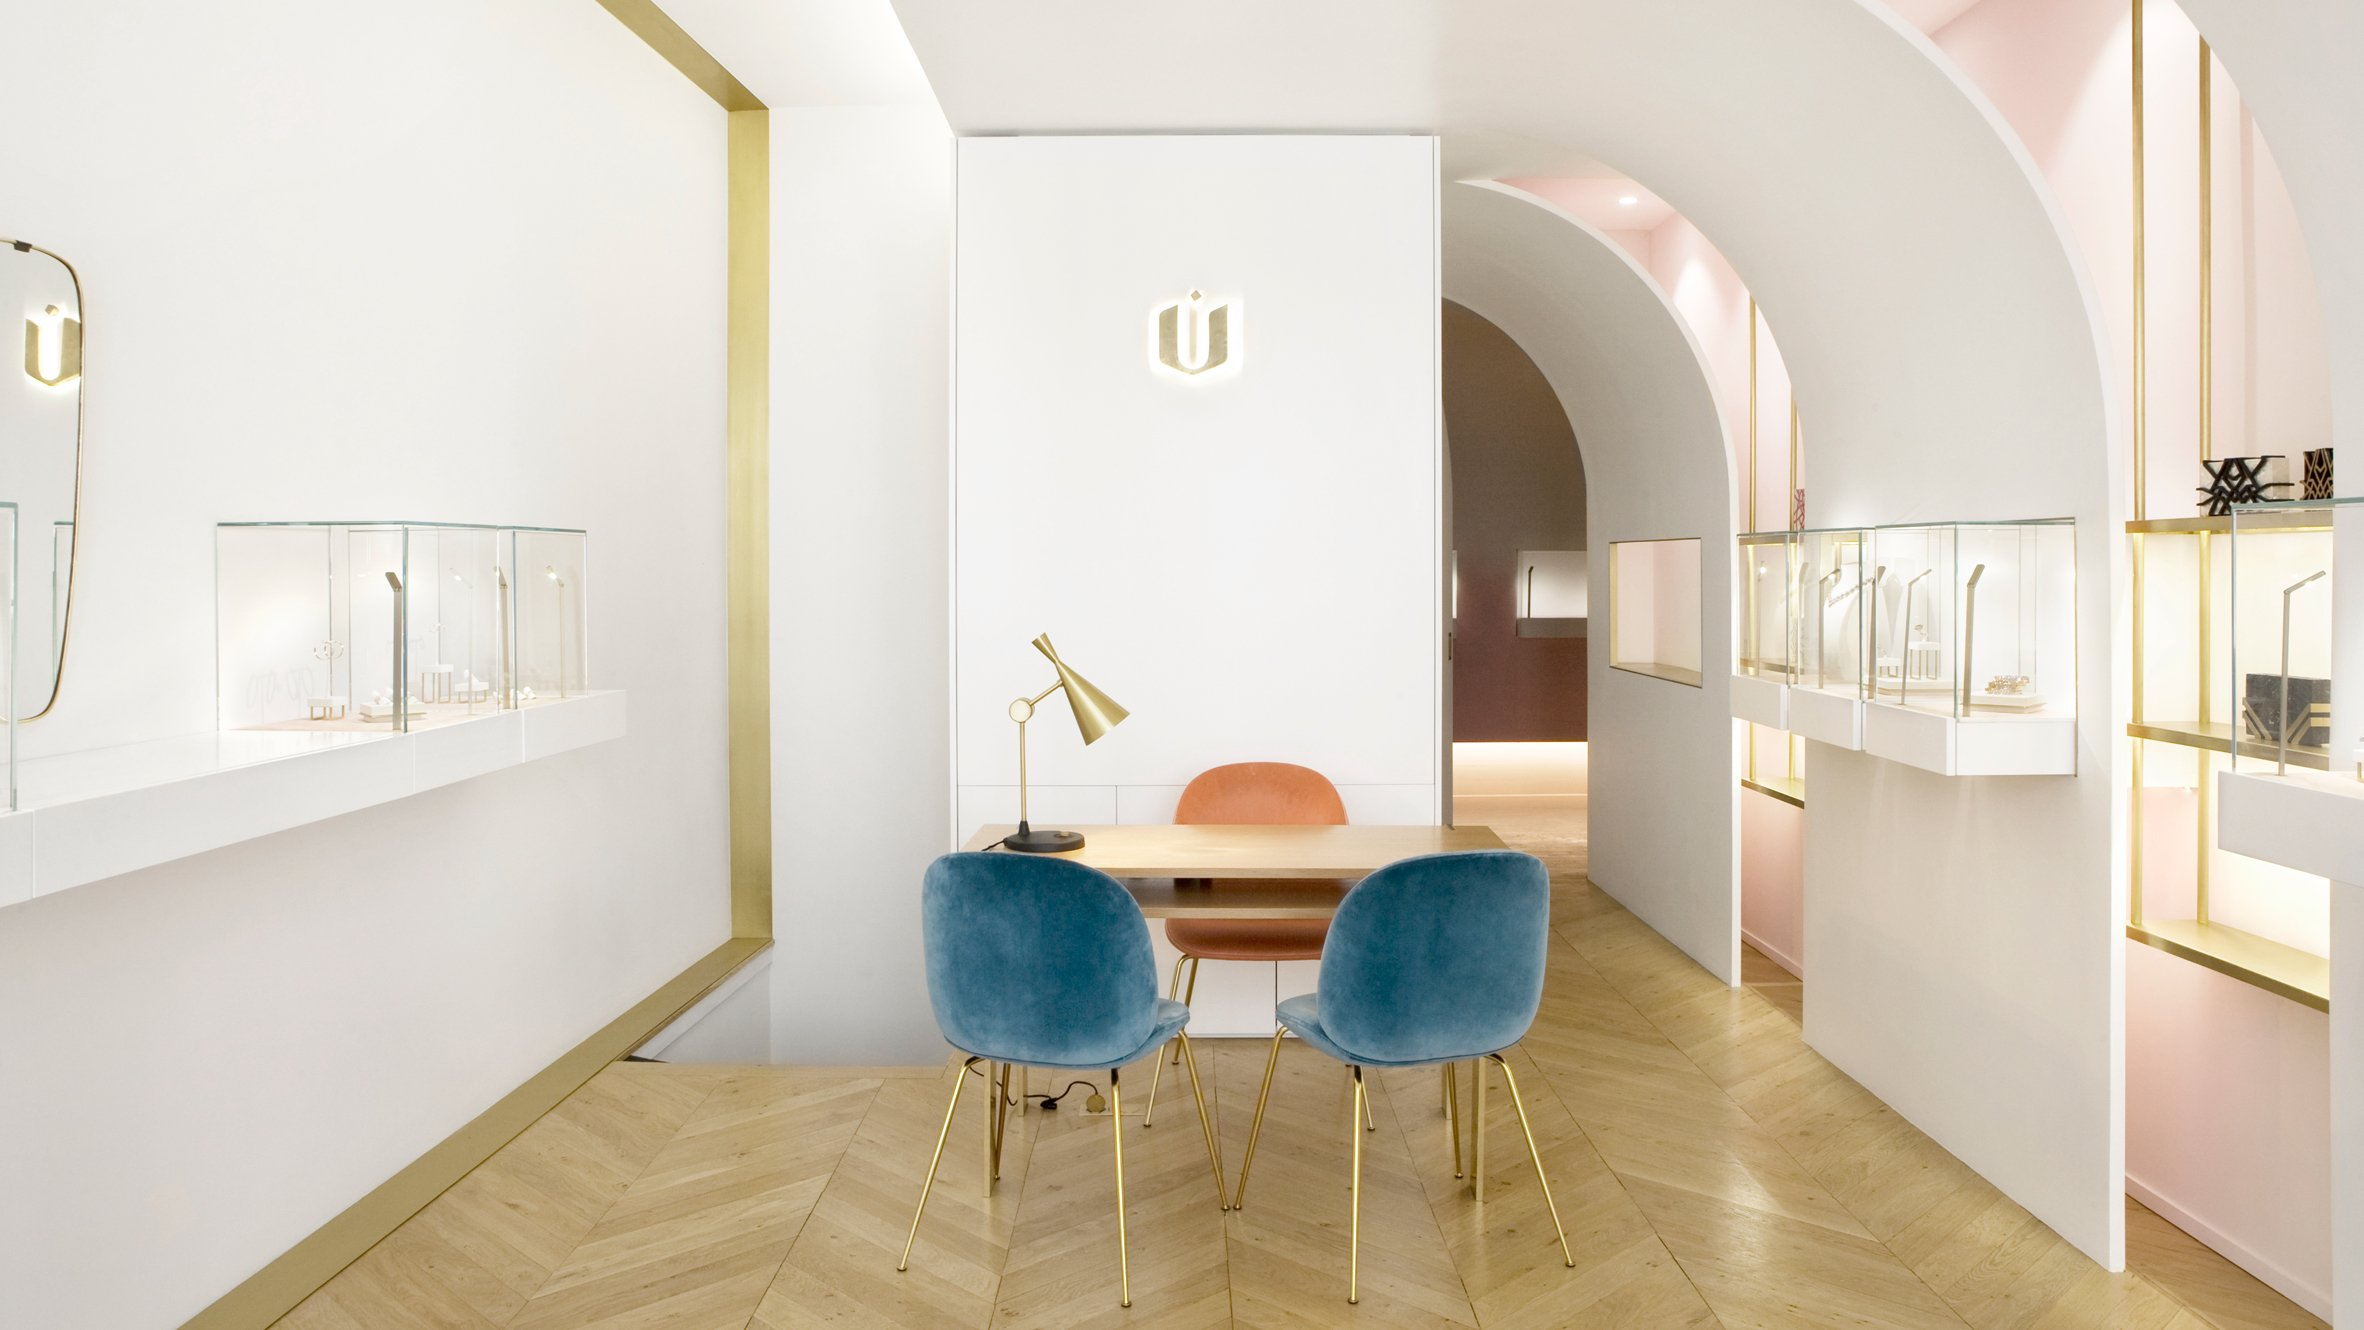 Soft Hued Jewellery Store Designed For Owner With Love Of Gold And Pink